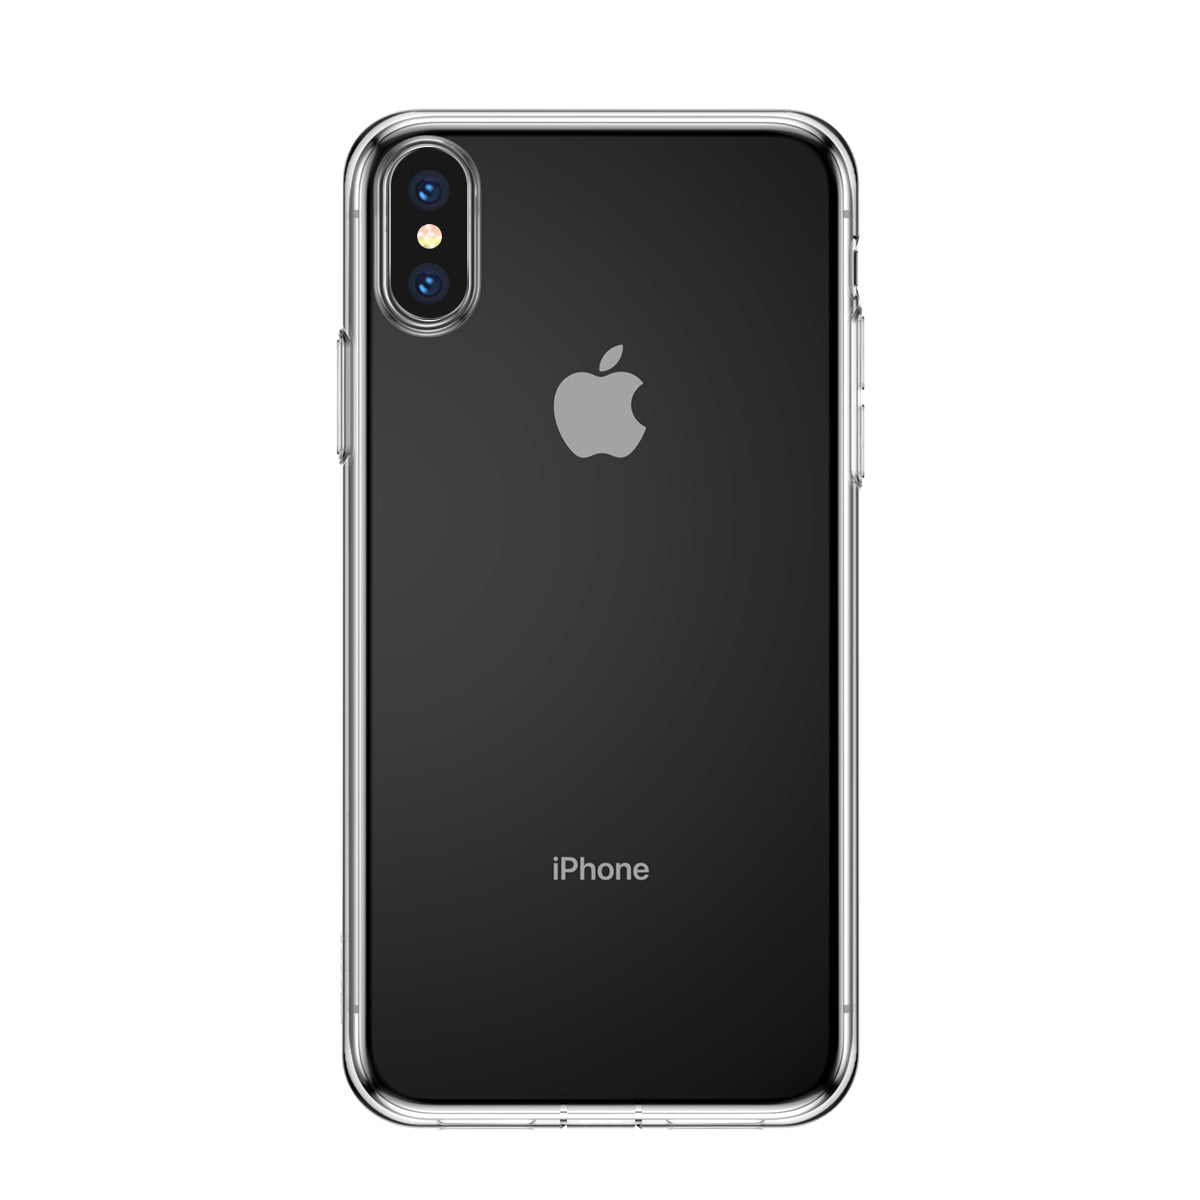 iPhone-XS-Baseus-Simple-Series-Transparent-Dust-Free-Plug-Rear_S07WI3GK5S0Y.jpg